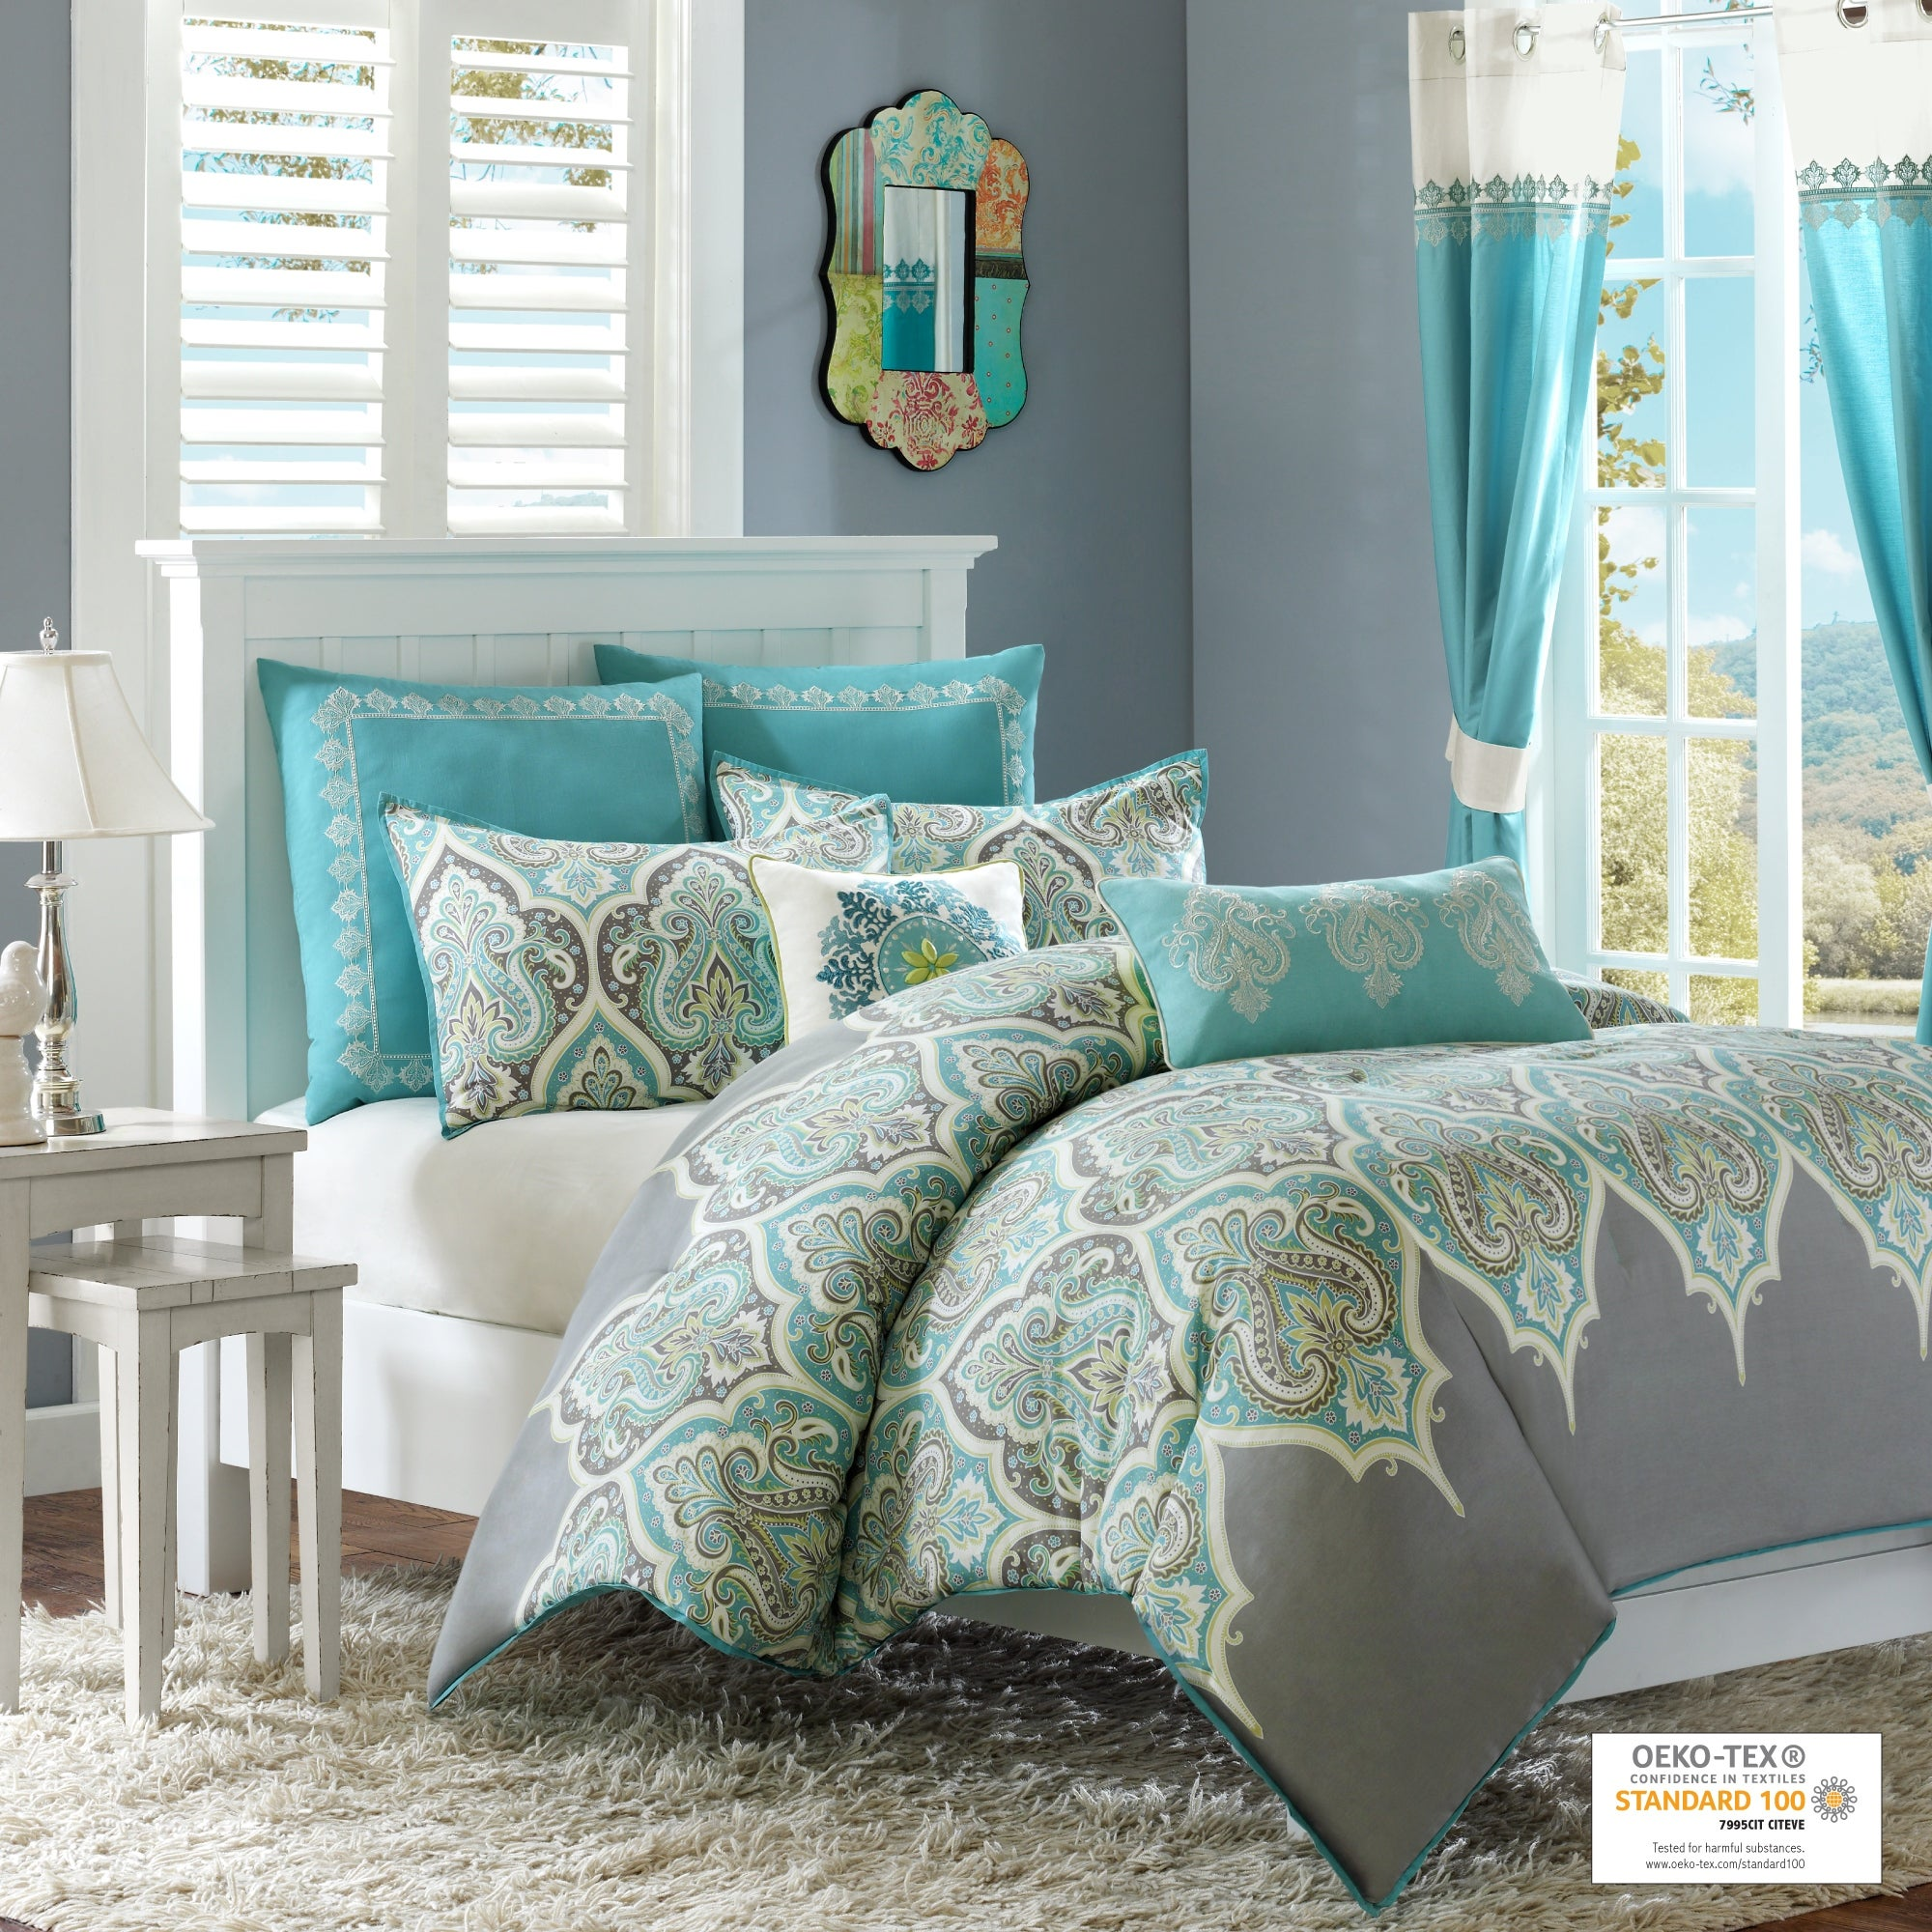 The Curated Nomad Largo Cotton 7 Piece Comforter Set Including Euro Sham Decorative Pillows Overstock 21285213